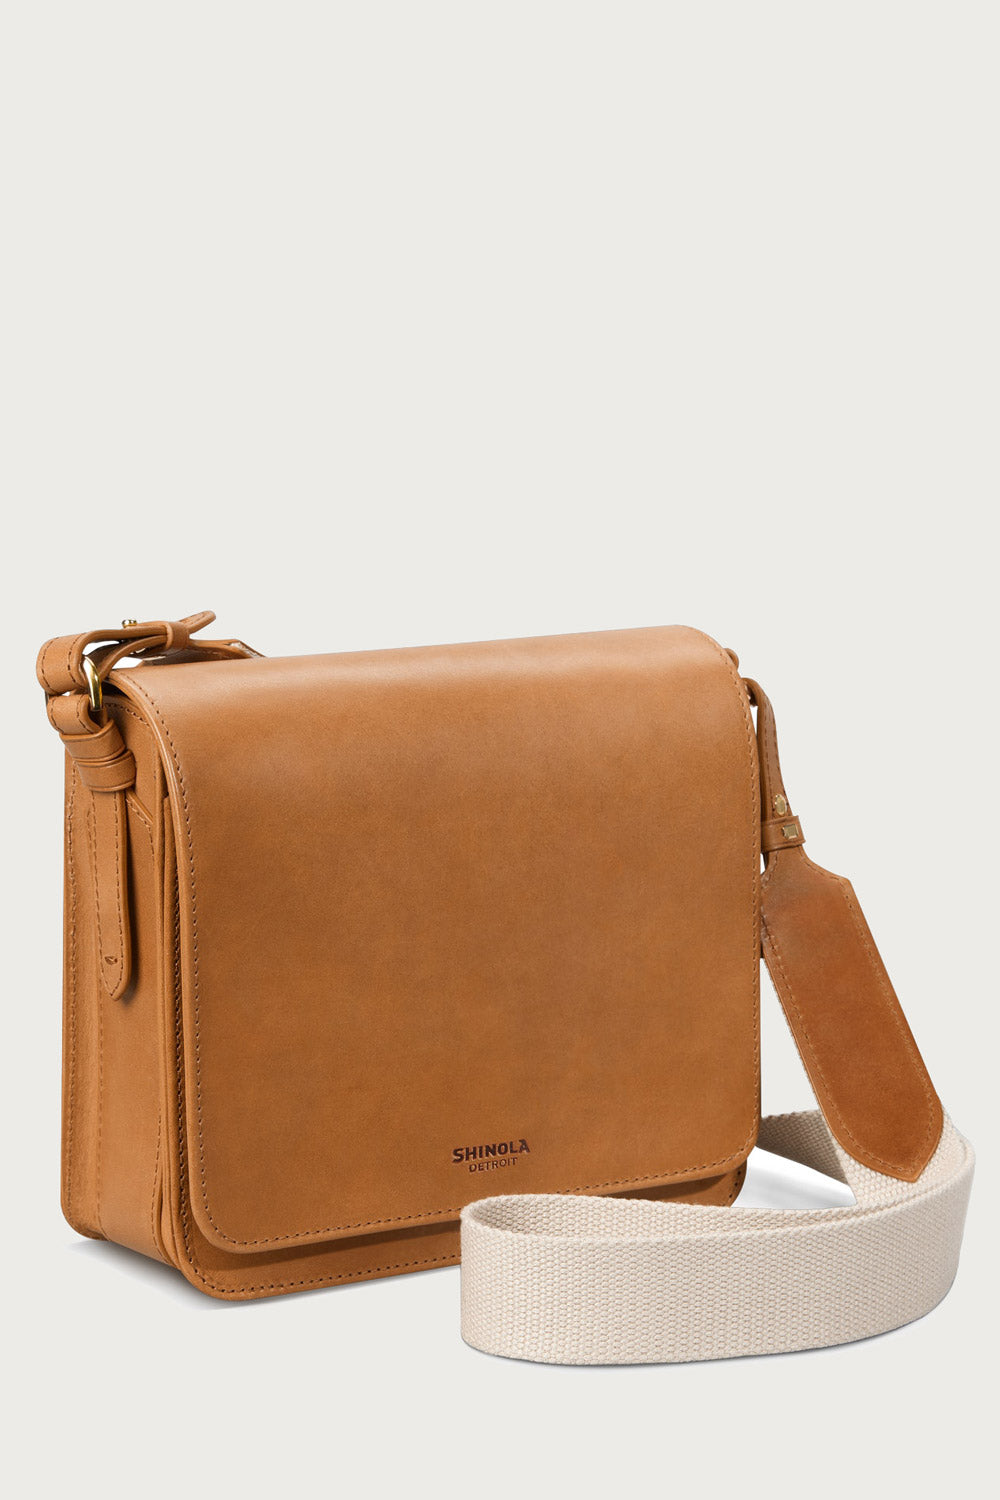 Sibley Crossbody in Natural